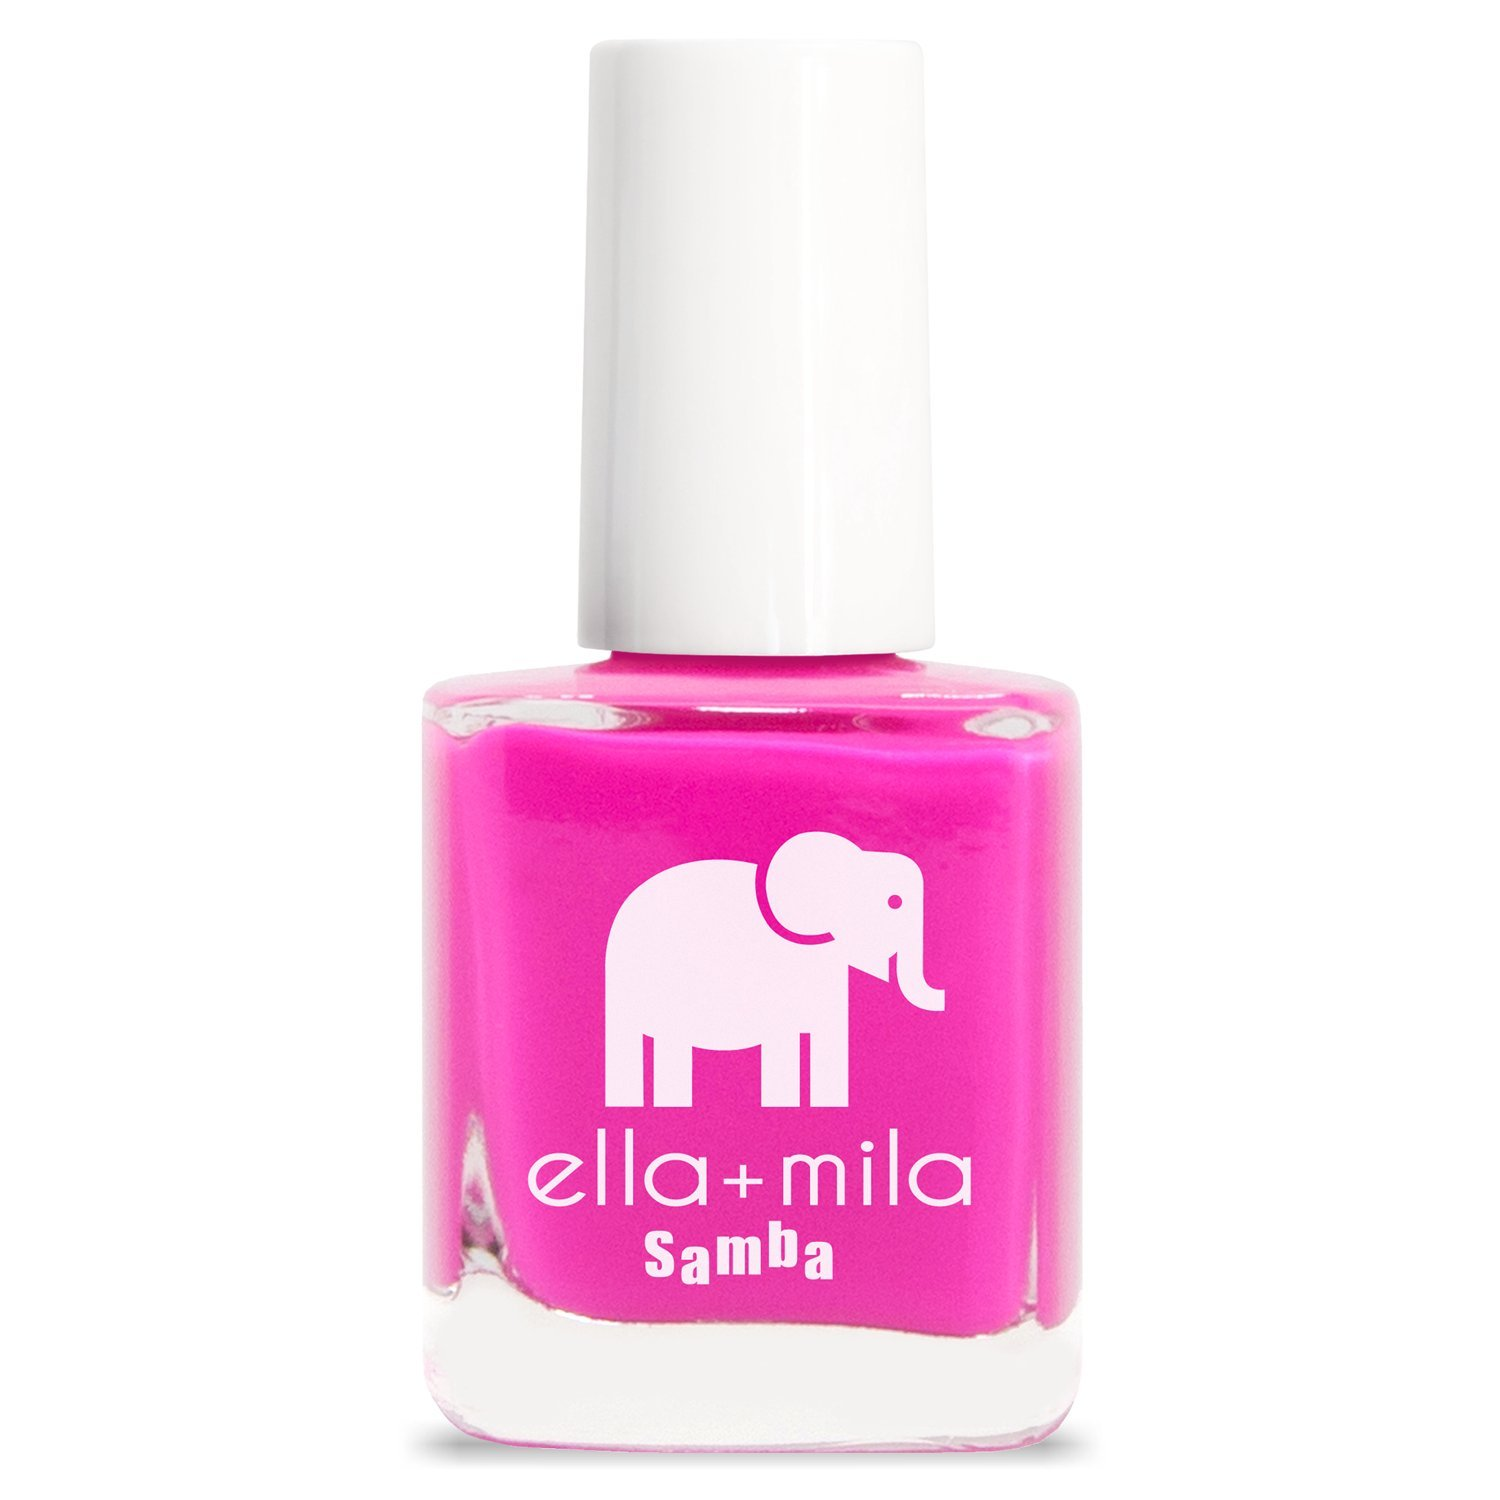 ella+mila Nail Polish, Samba Collection - Sun Has Set